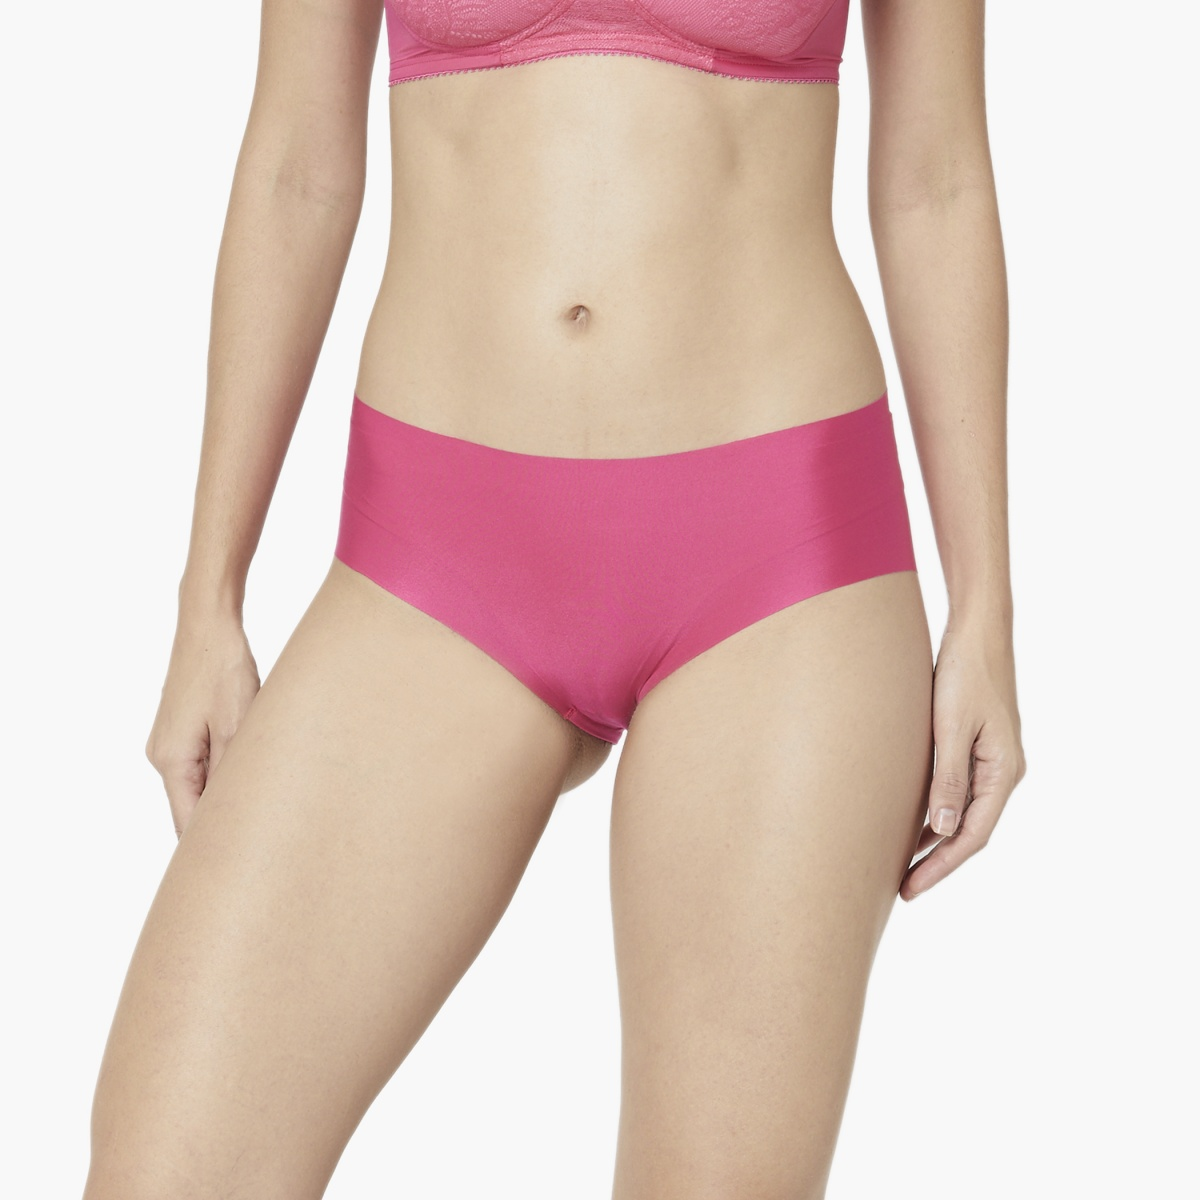 TRIUMPH Stretty Skin Fit 15 Seamless Hipster Panties - Pack of 2 Pcs.